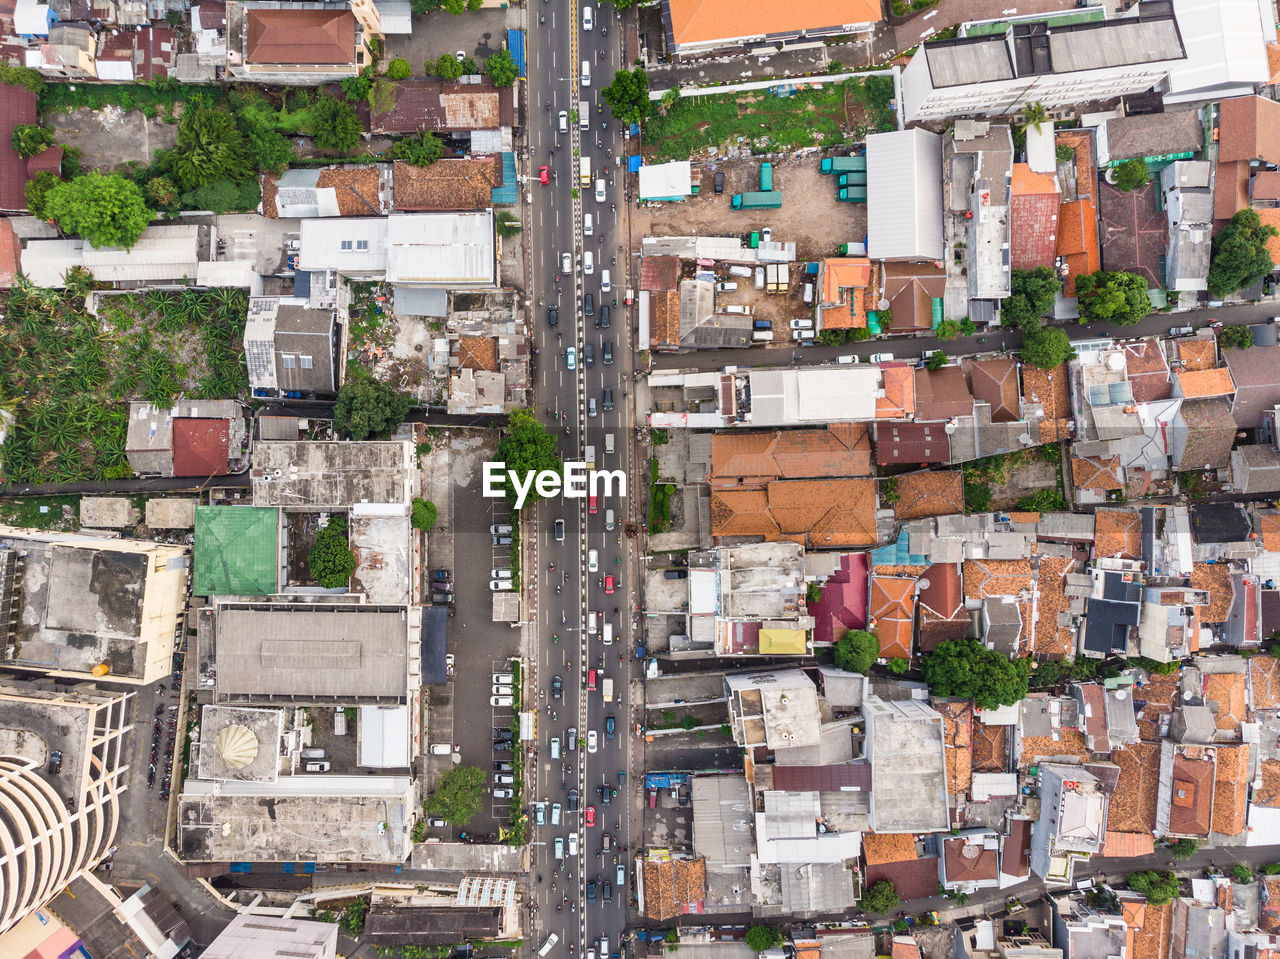 Aerial view of buildings and street in city